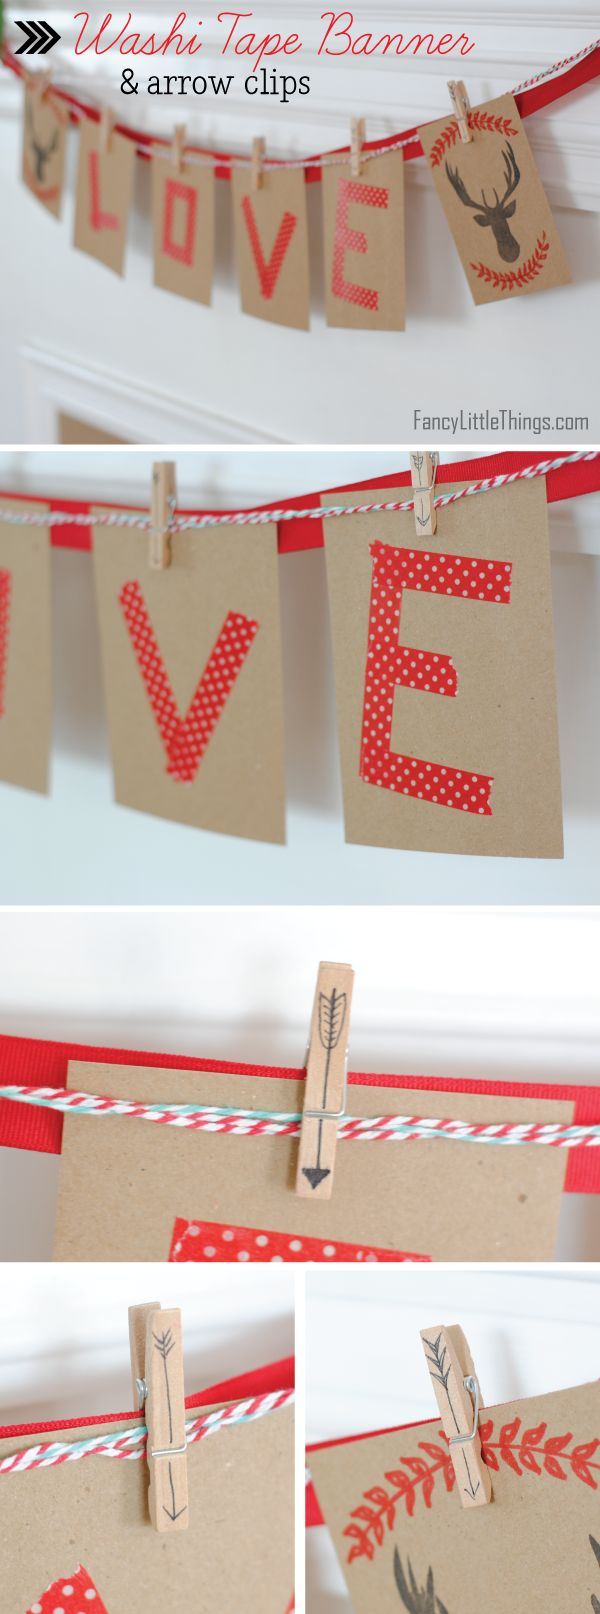 DIY Valentine's Day Washi Tape Banner // Cute DIY project from FancyLittleThings.com